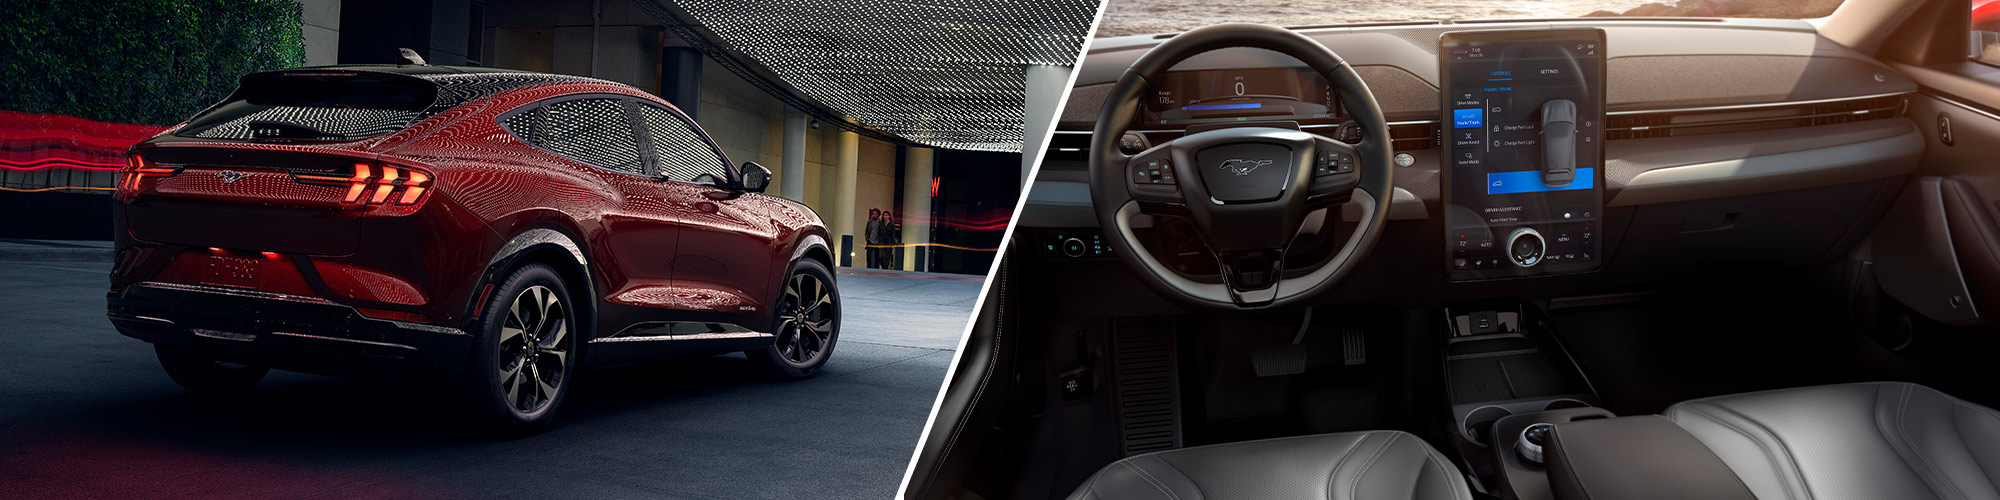 2021 Ford Mustang Mach-E Collage Back Interior